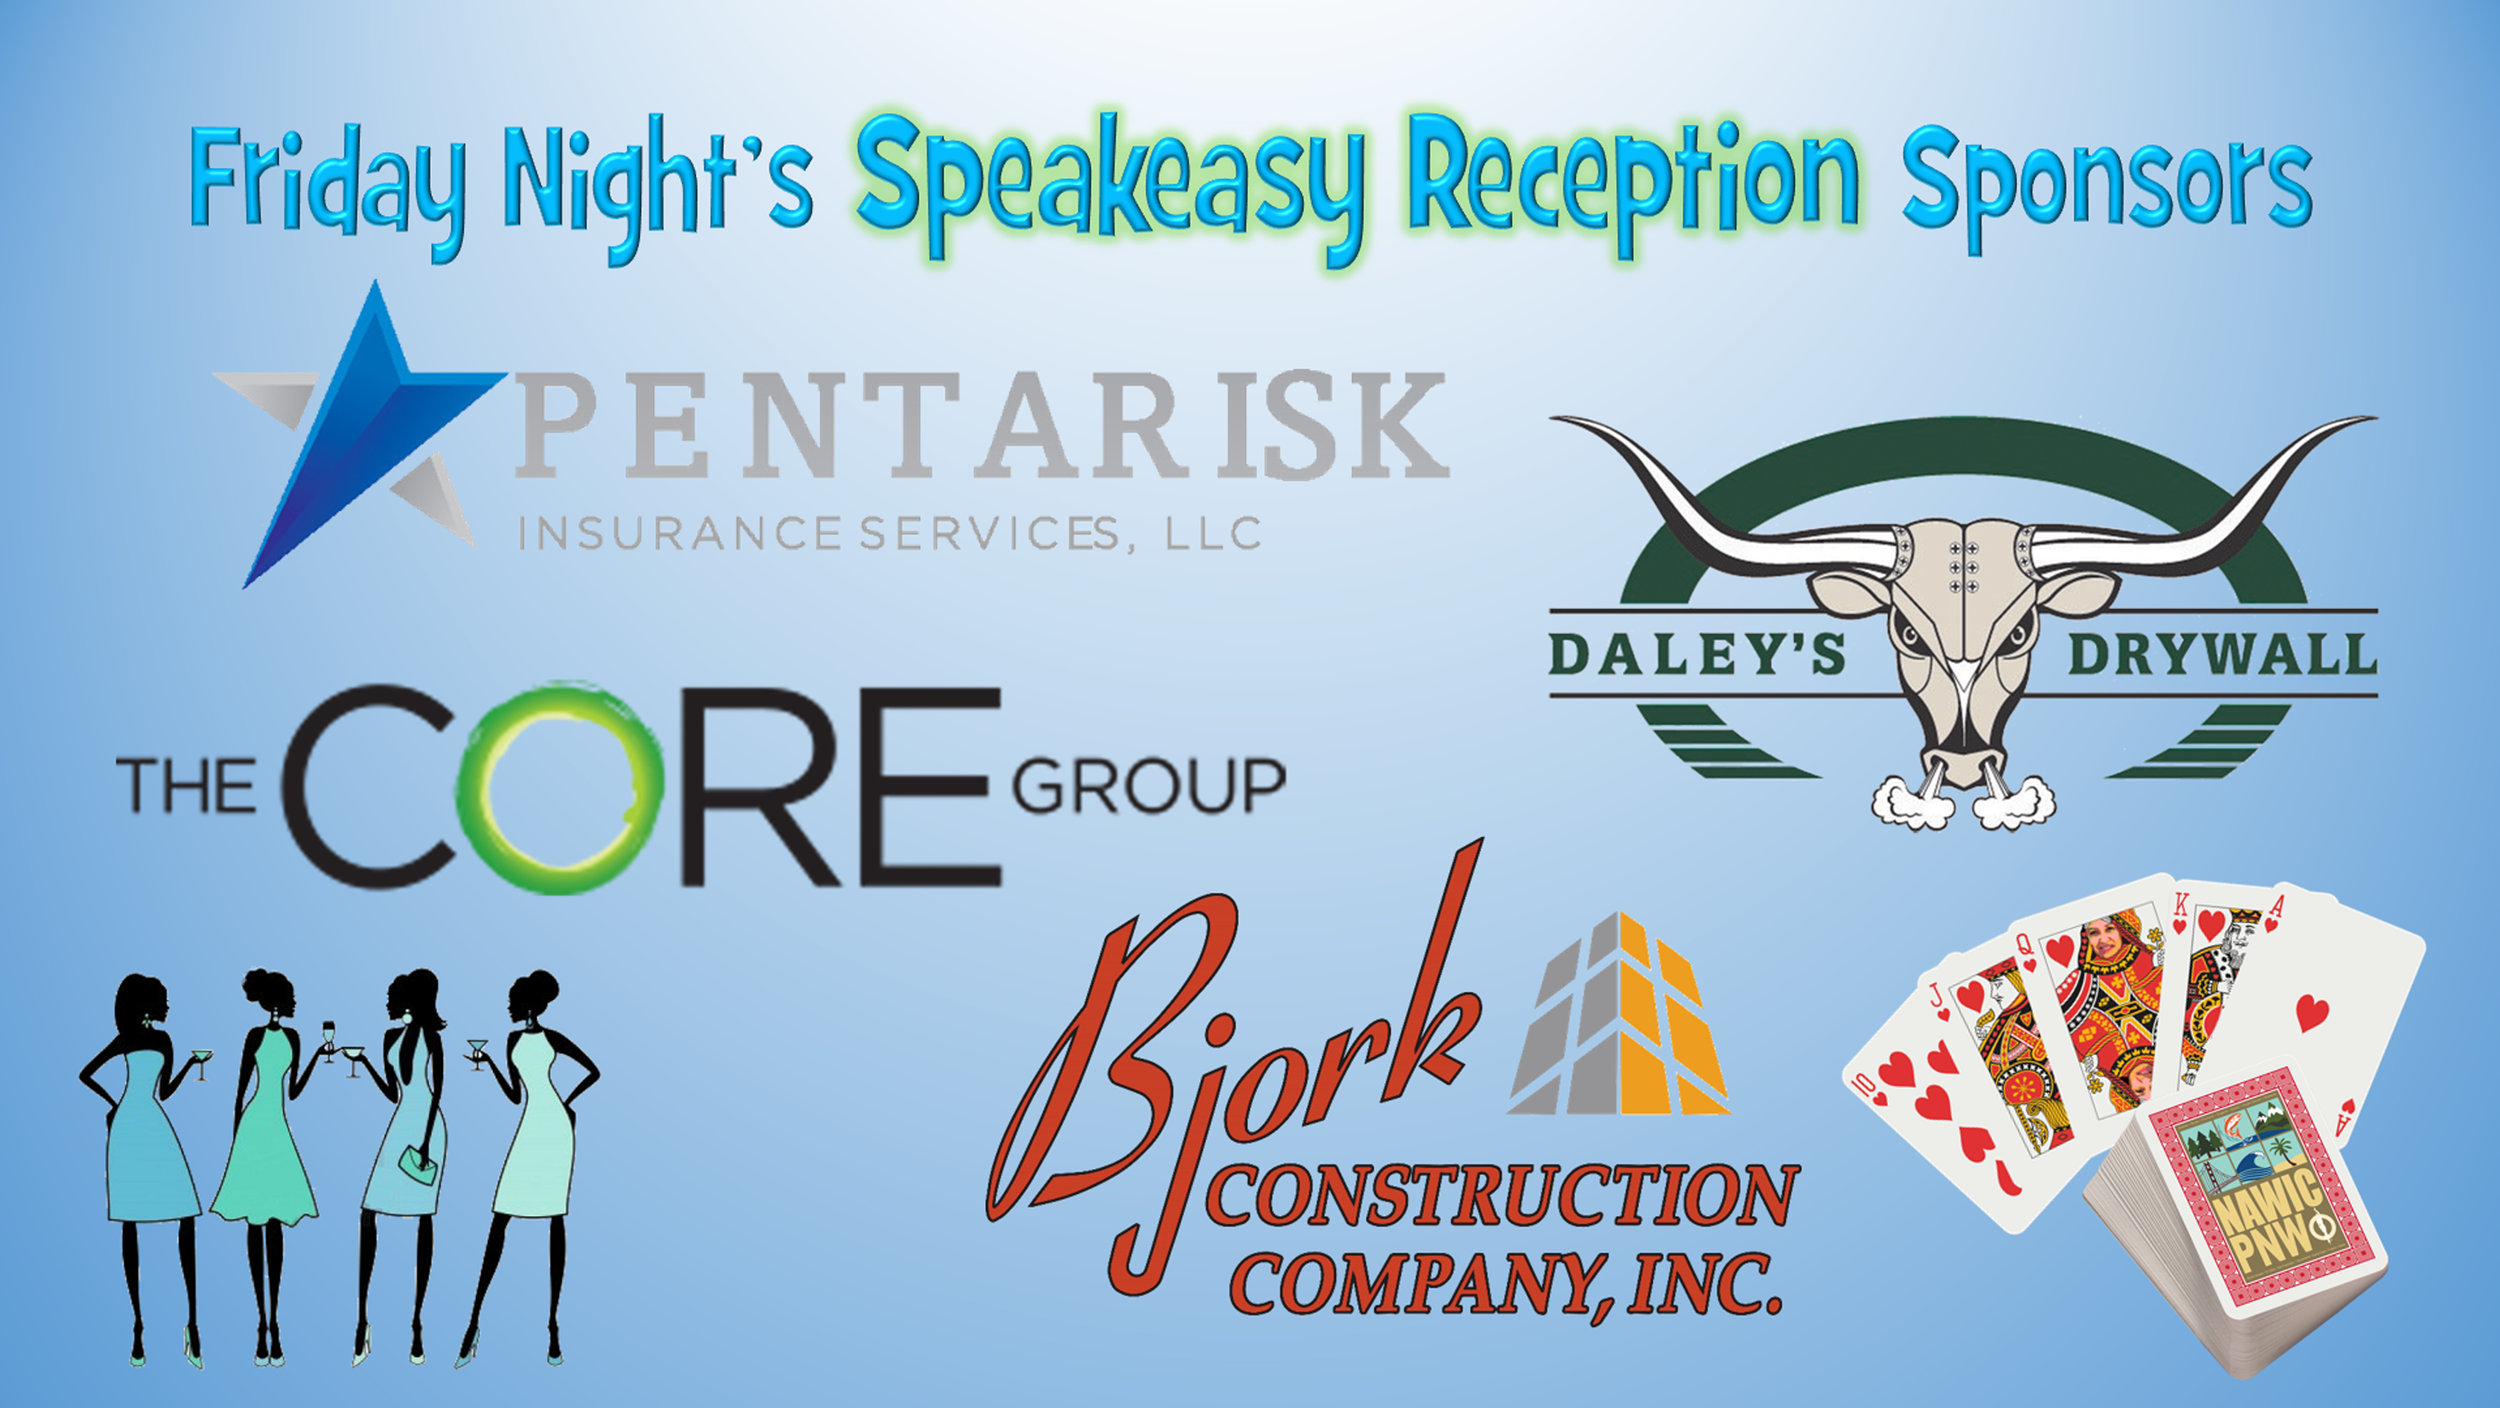 Reception Sponsors rev.jpg